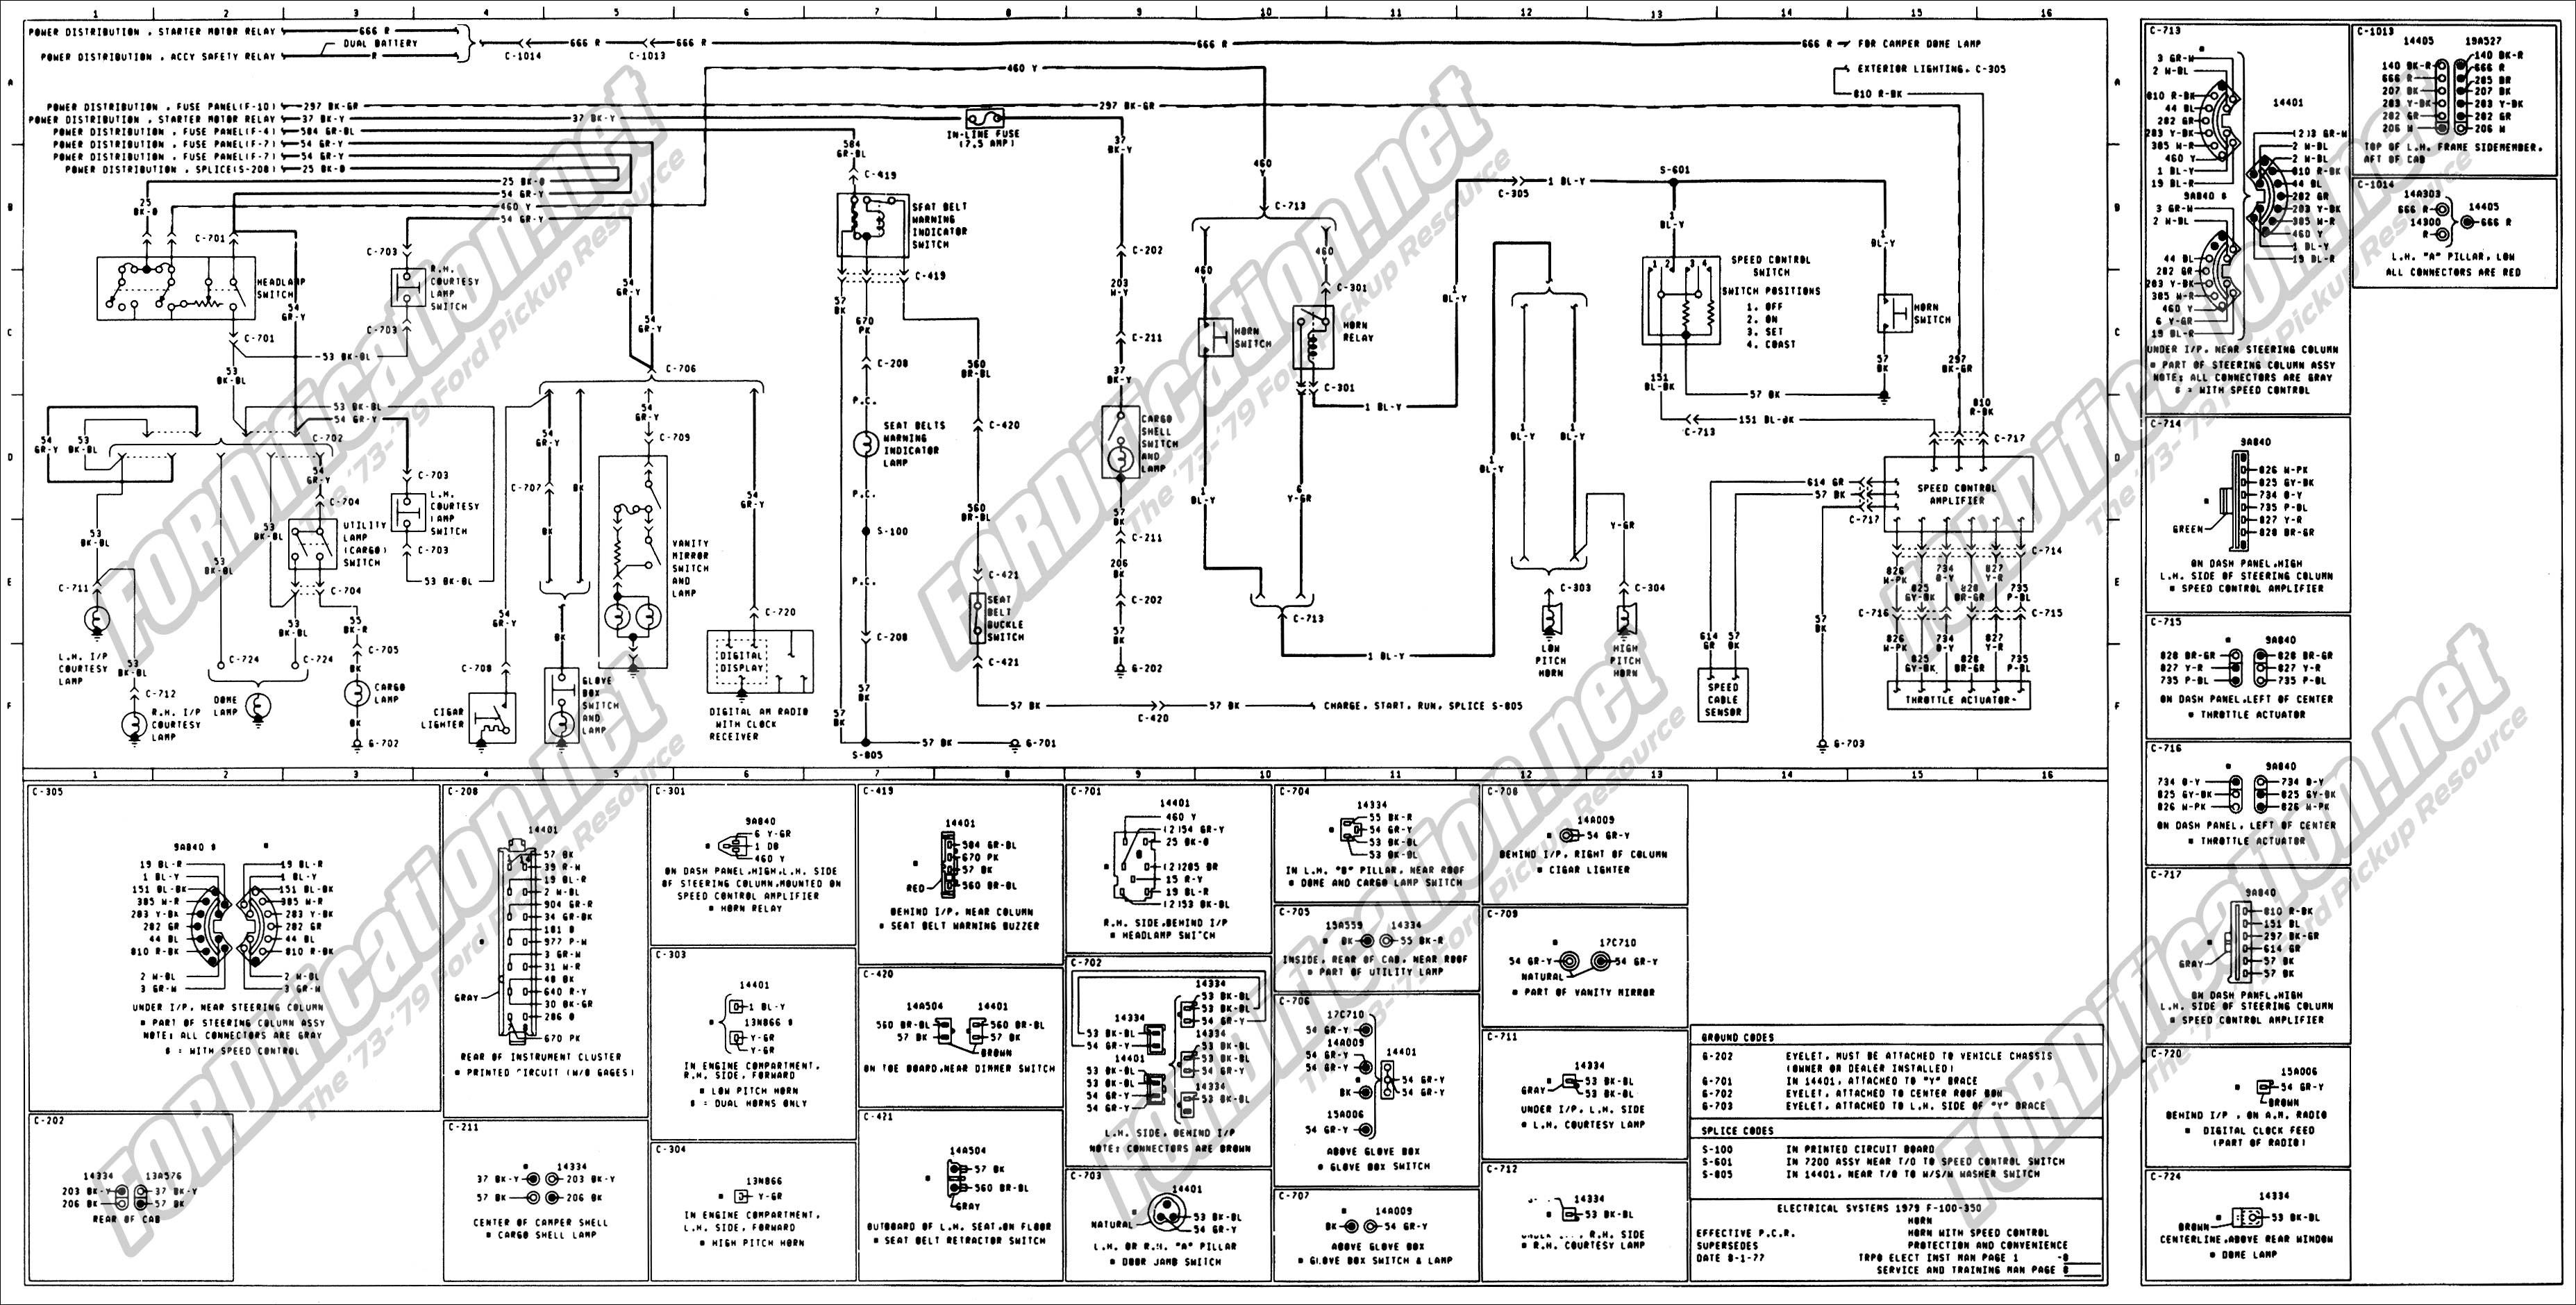 2004 ford F150 Engine Diagram 1973 1979 ford Truck Wiring Diagrams & Schematics fordification Of 2004 ford F150 Engine Diagram